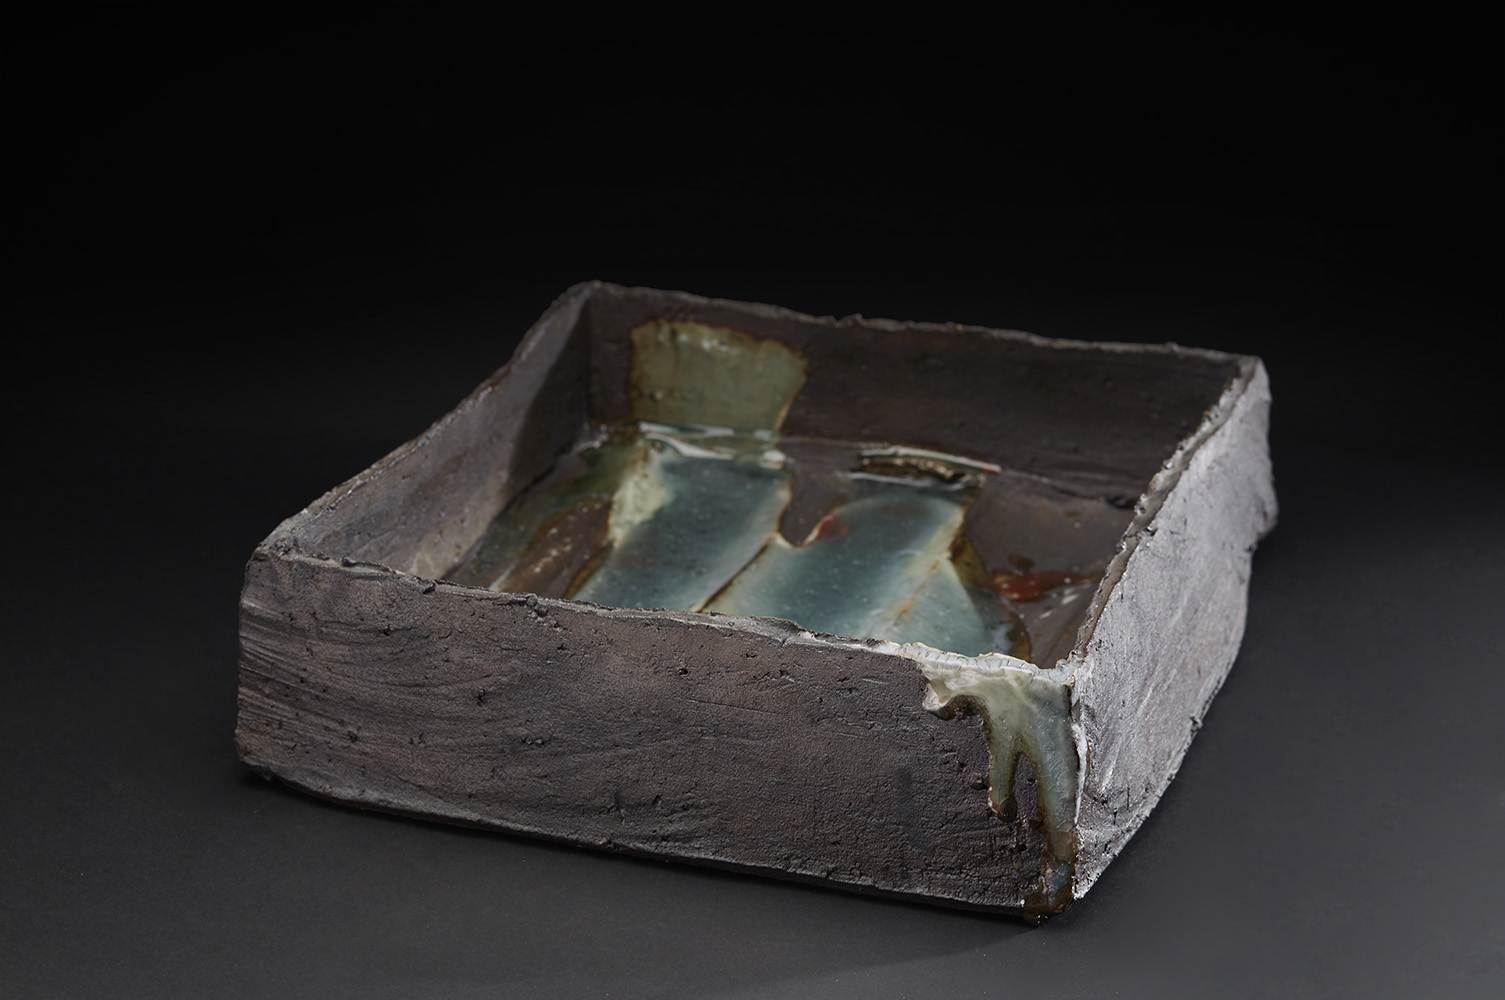 Margaret Curtis Square Slabbed Dish, 2016 Stoneware, reduction fired in brick built oil kiln at 1300 Celsius. Thrown and altered, black body with over-pourings of porcelain slip and celadon glaze. 3.5 x 13 x 13 inches 8.9 x 33 x 33 cm MCu 6